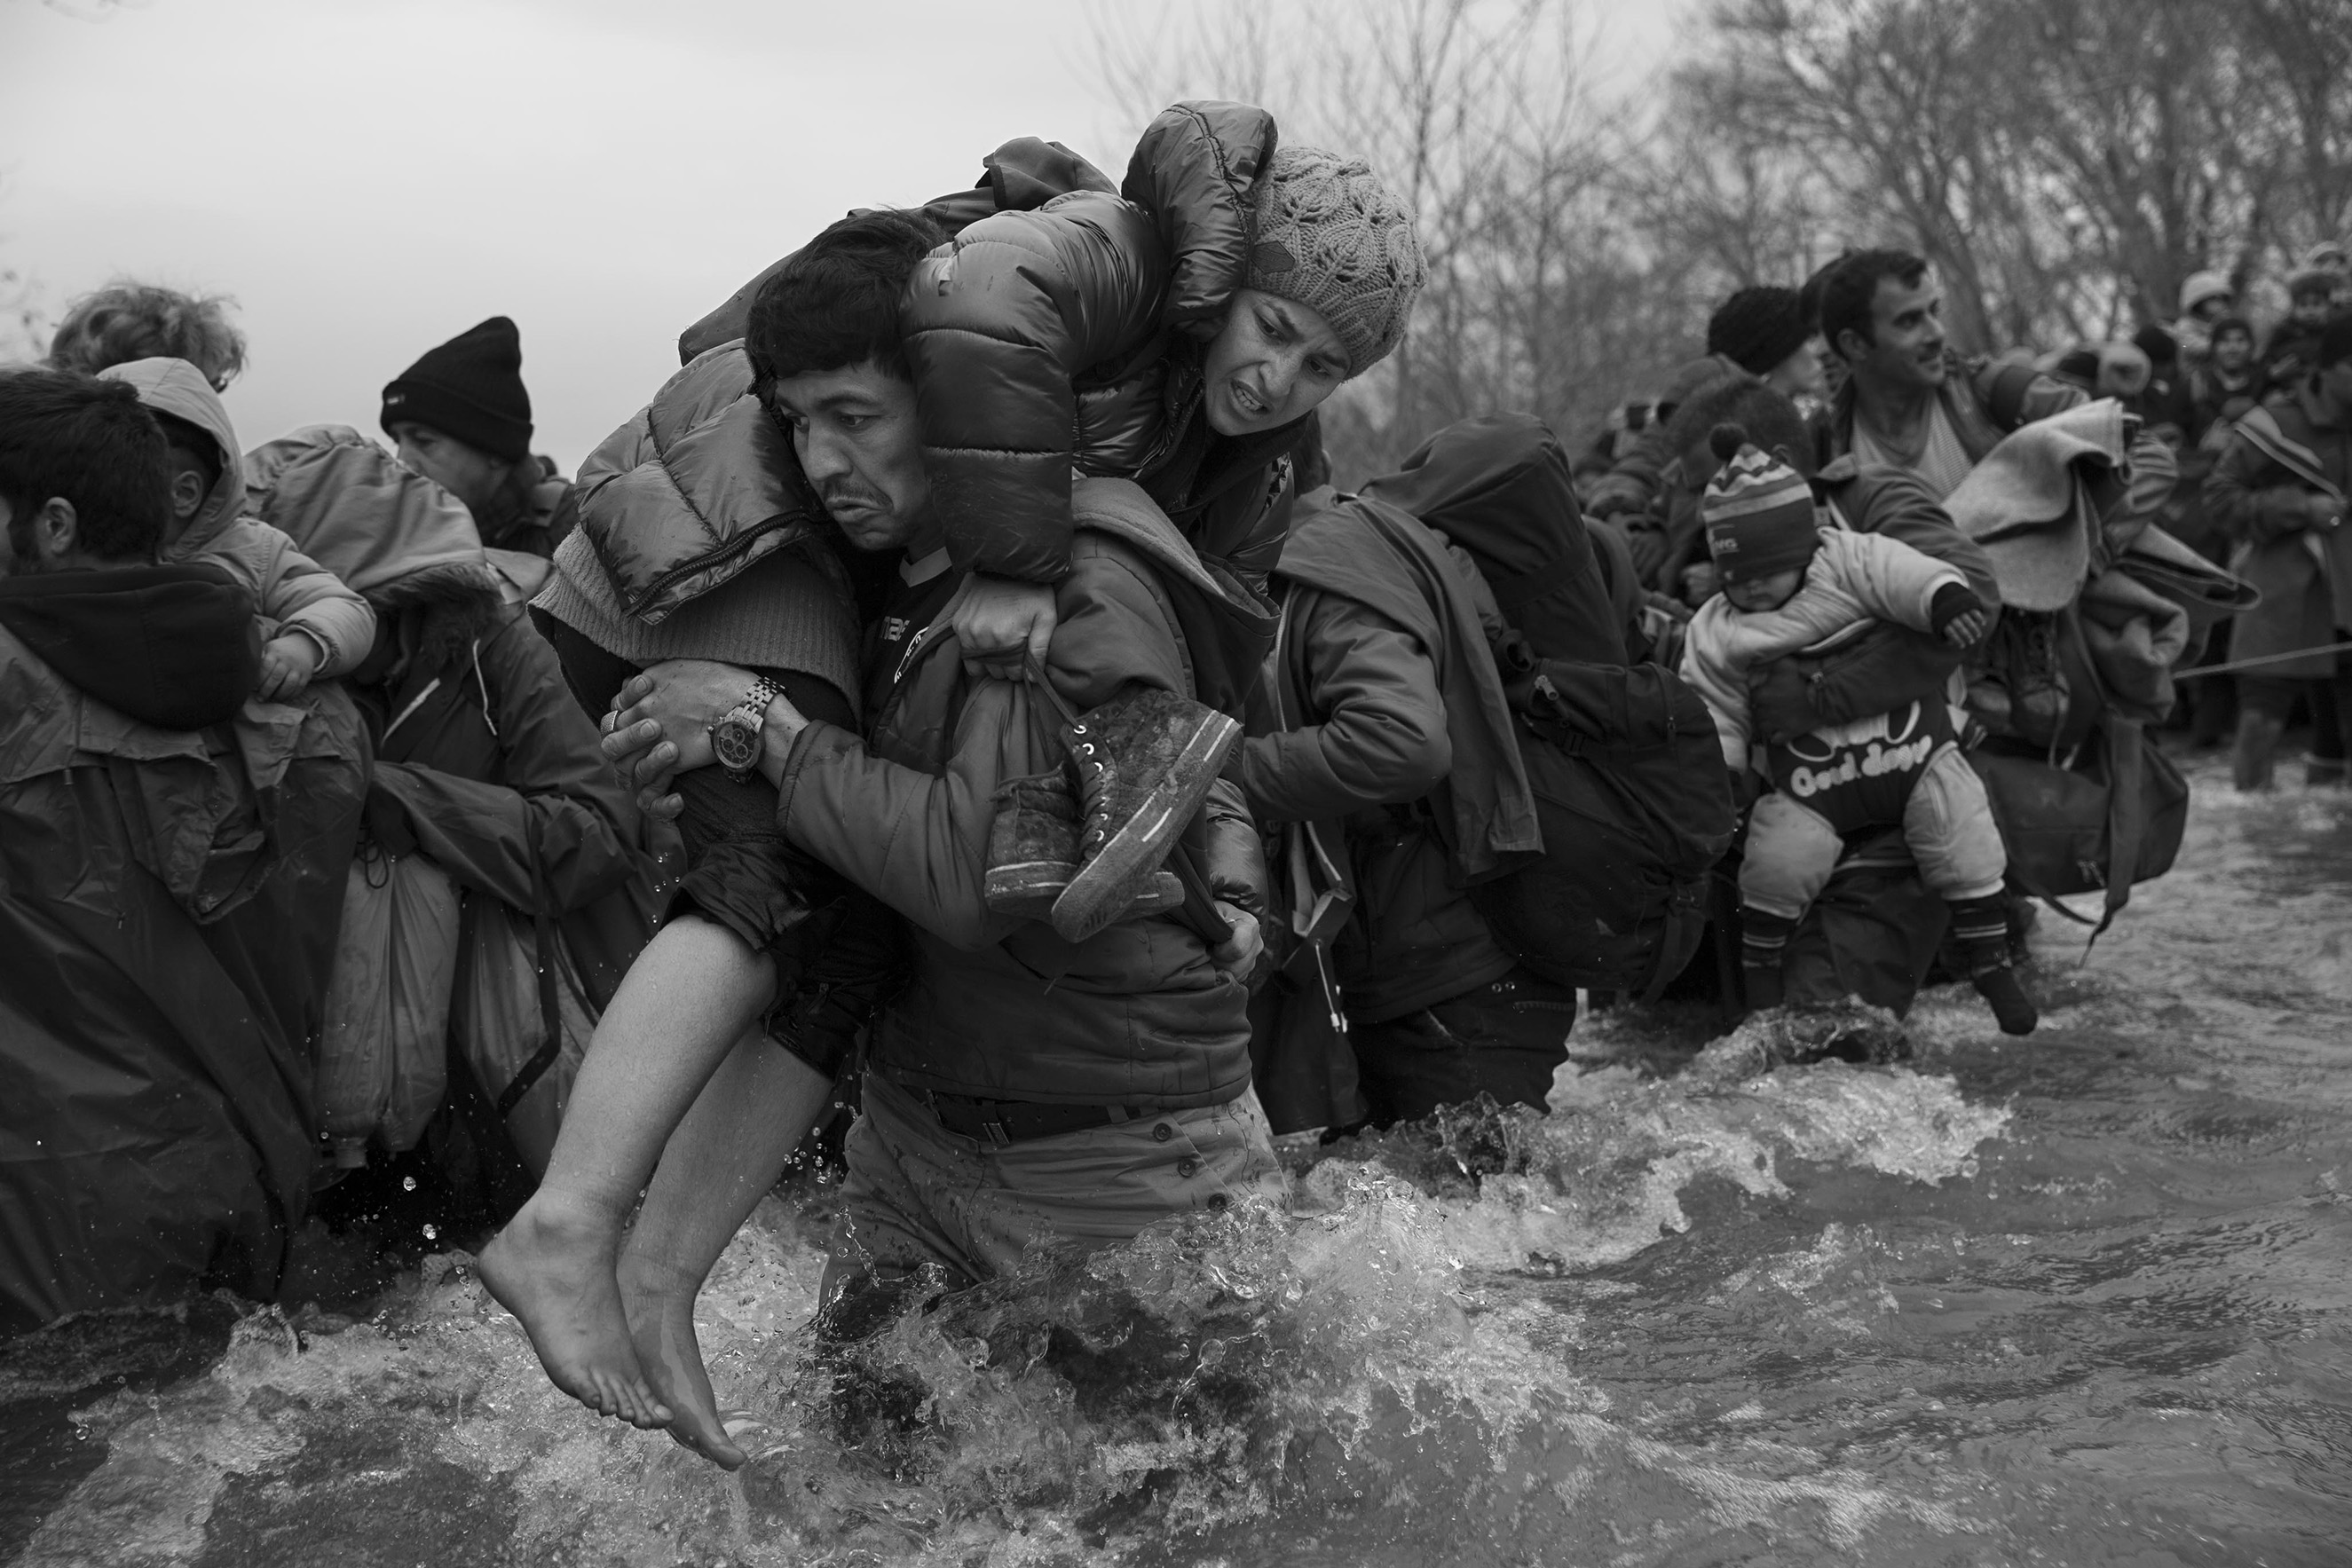 An estimated 1,000 migrants made their way from the sprawling camp in Idomeni, Greece and crossed a river near the border in the hopes of crossing into Macedonia, March 14, 2016.From  James Nachtwey: A New Purgatory for Thousands of Refugees